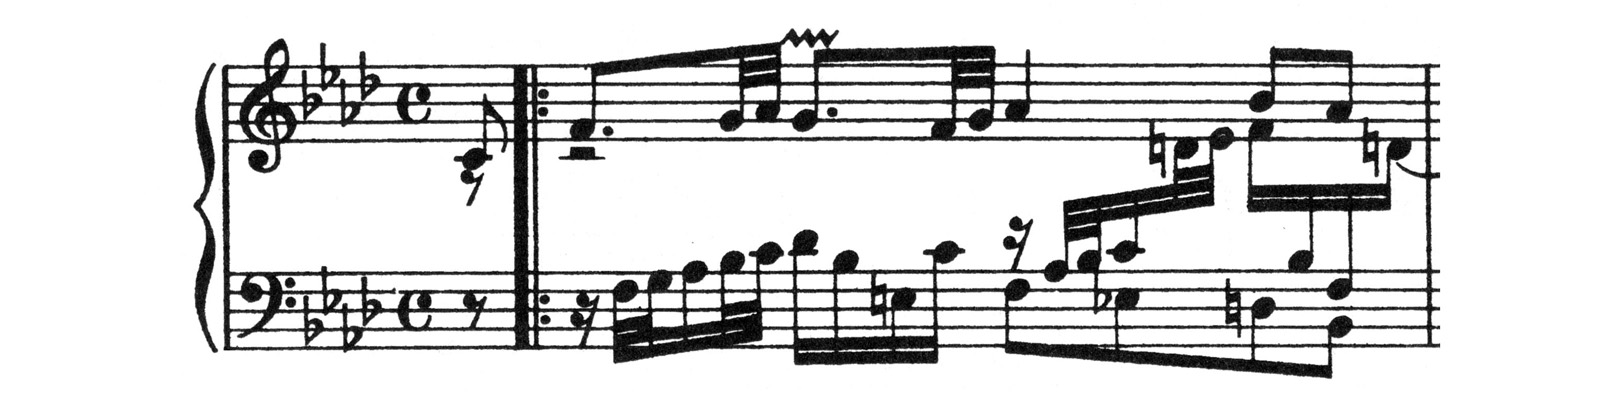 Example of traditional edition (Bach BWV 658) - Lines and beams are thick, beam space and thickness are unbalanced